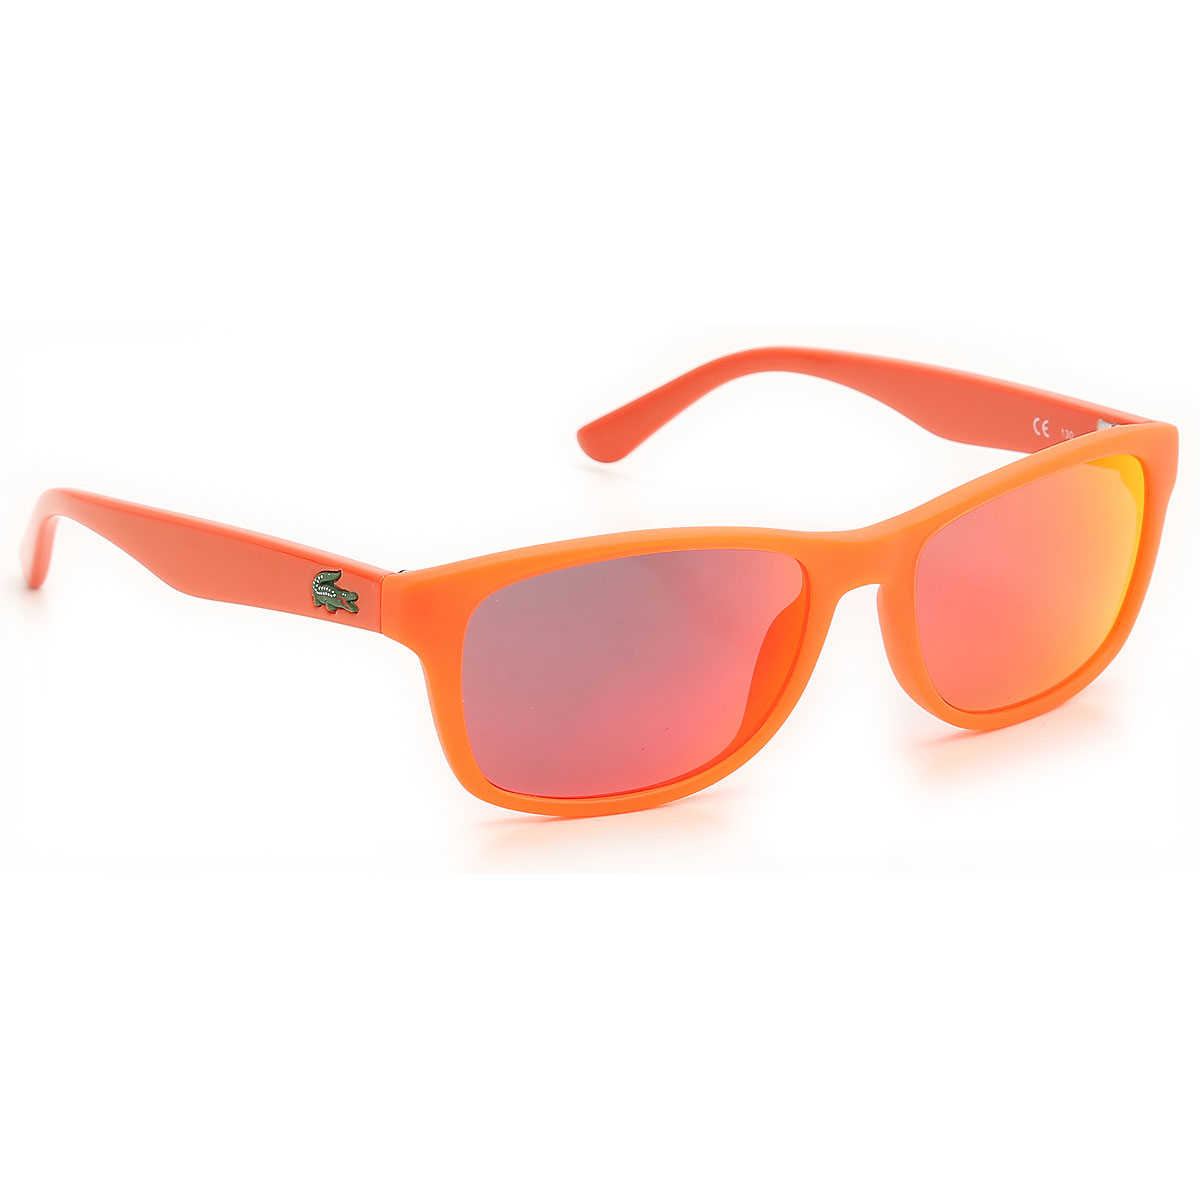 Lacoste Kids Sunglasses for Boys Matt Fluo Orange USA - GOOFASH